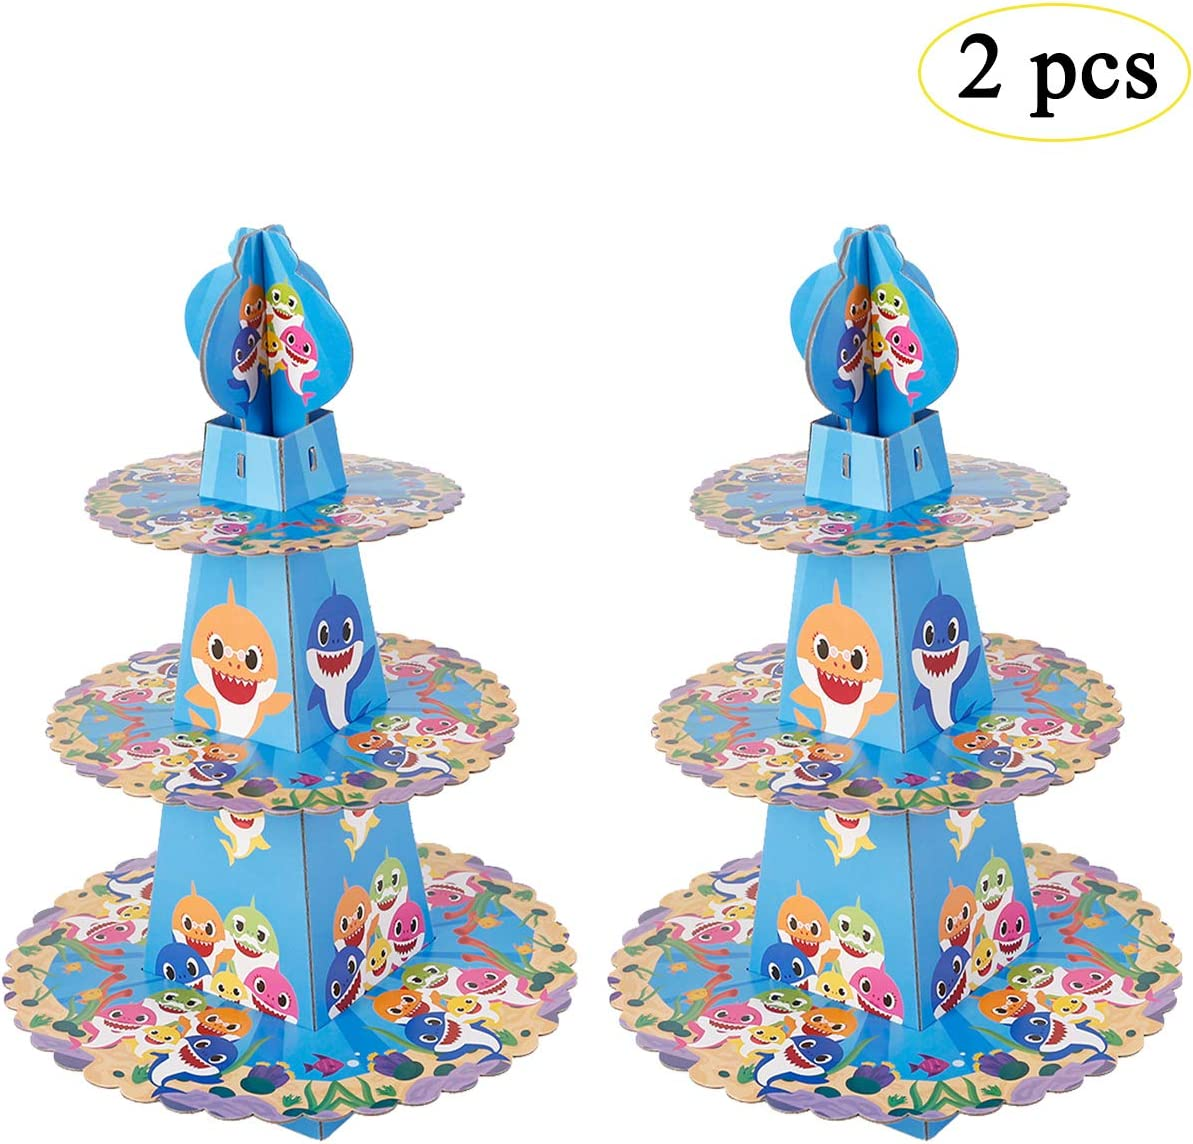 zhouweizhouwen Shark Party Supplies for Baby - Cupcake Stand Dessert Cupcake Holder for Kids Birthday Party,Baby Shower, Gender Reveal Party,or Baby Shark Themed Party